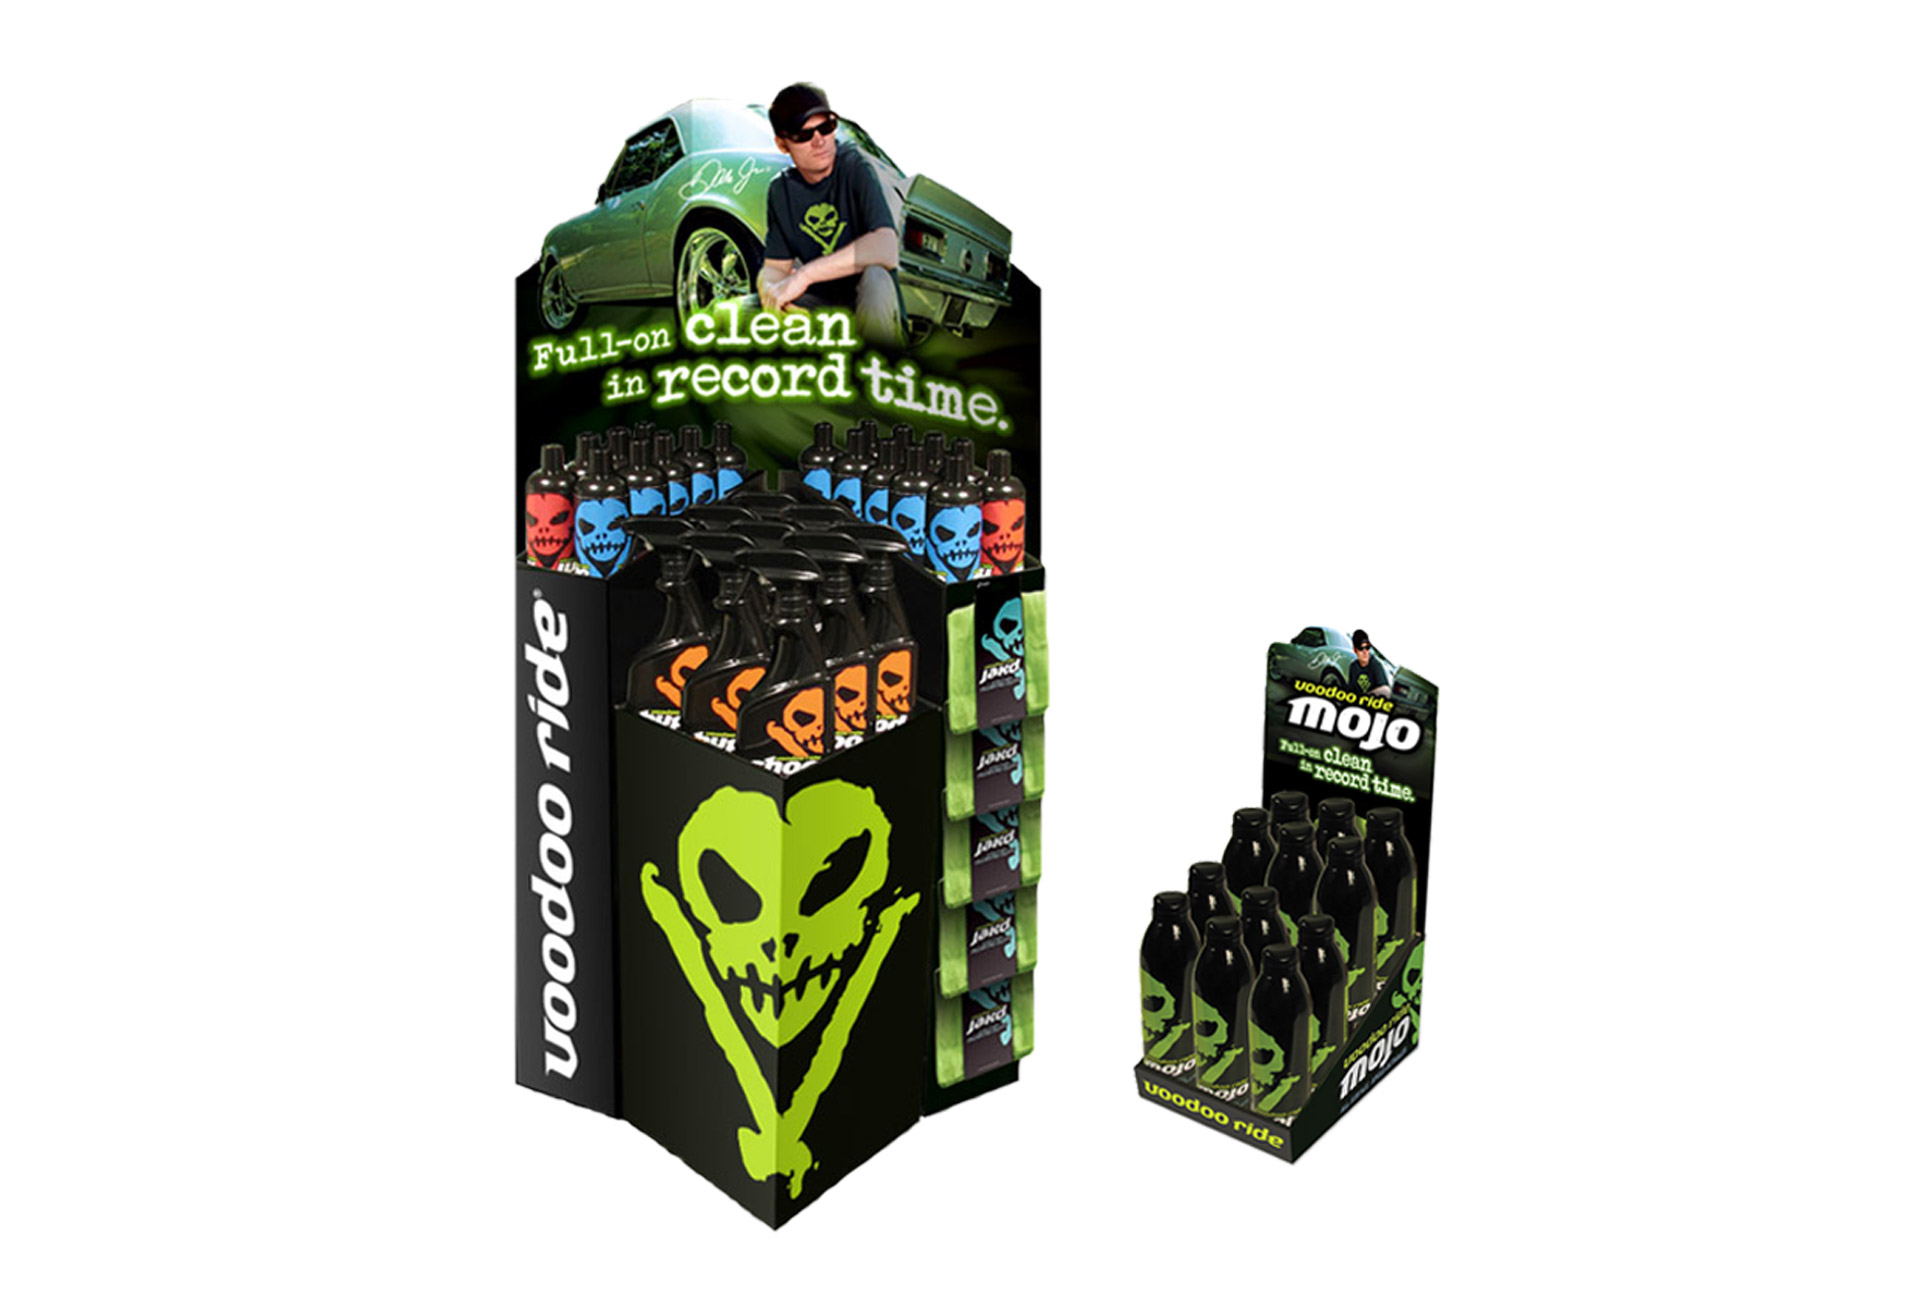 VooDoo Ride Product Displays